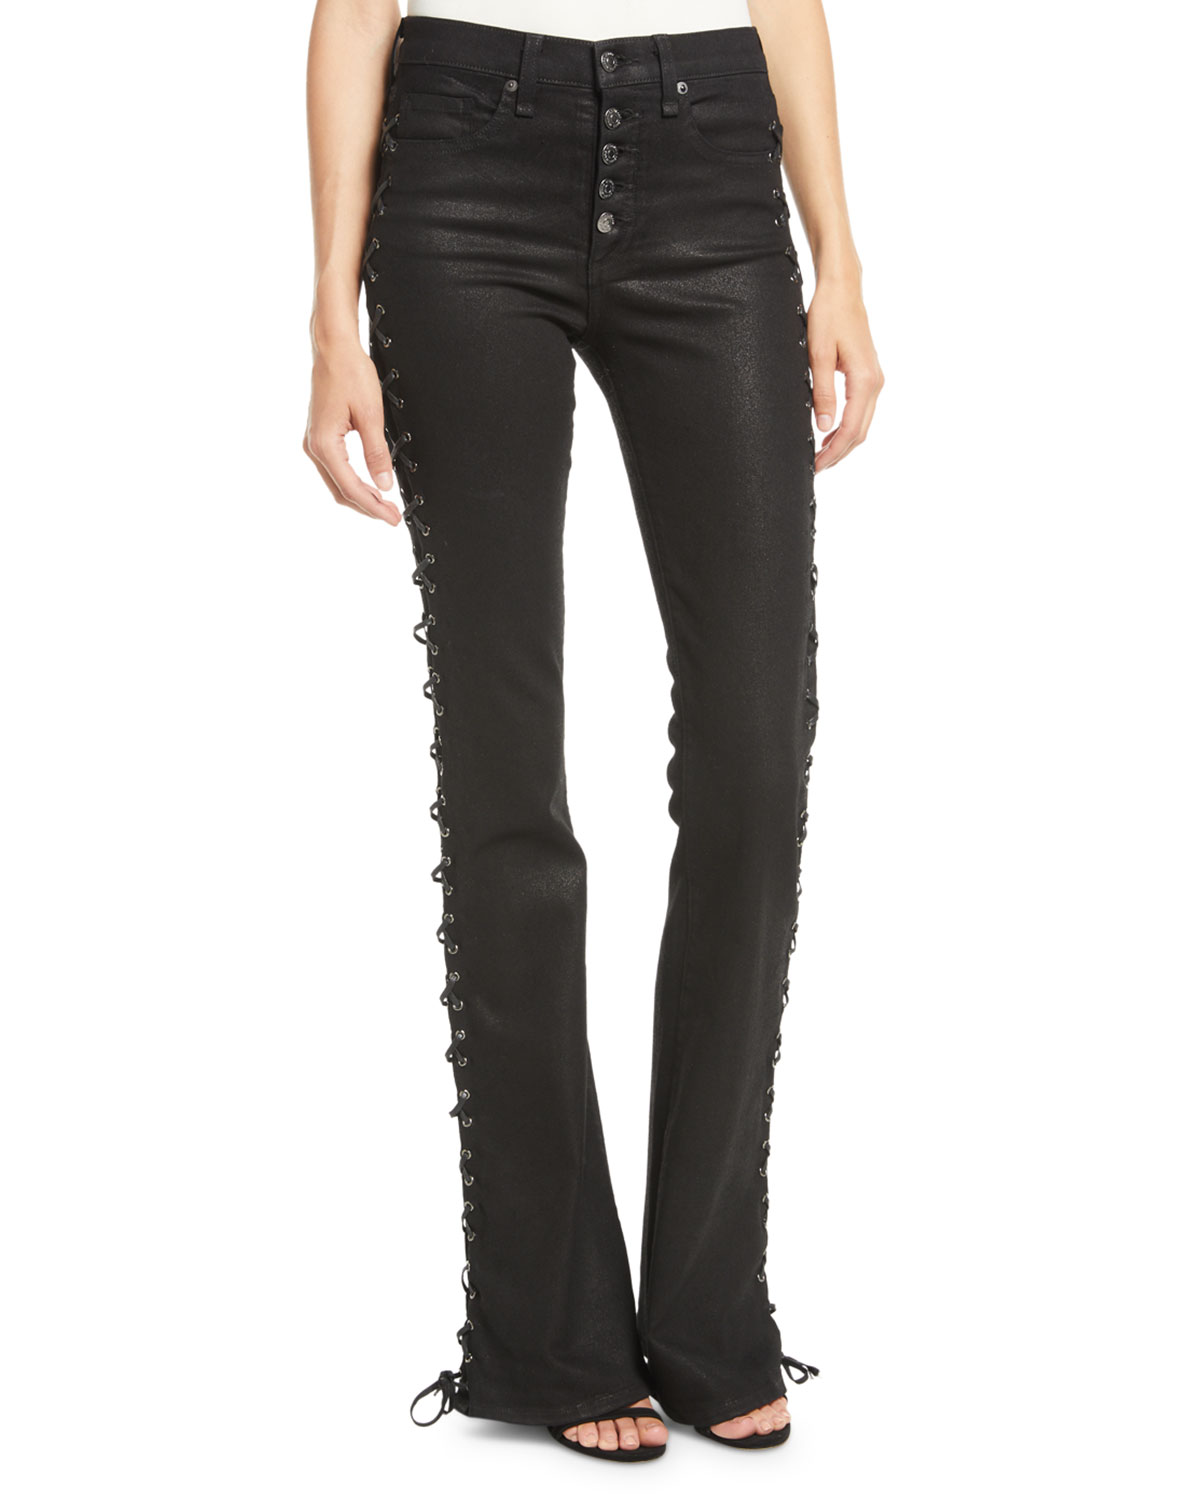 bfdf96426e Veronica Beard Beverly Lace-Up Skinny Flare-Leg Jeans